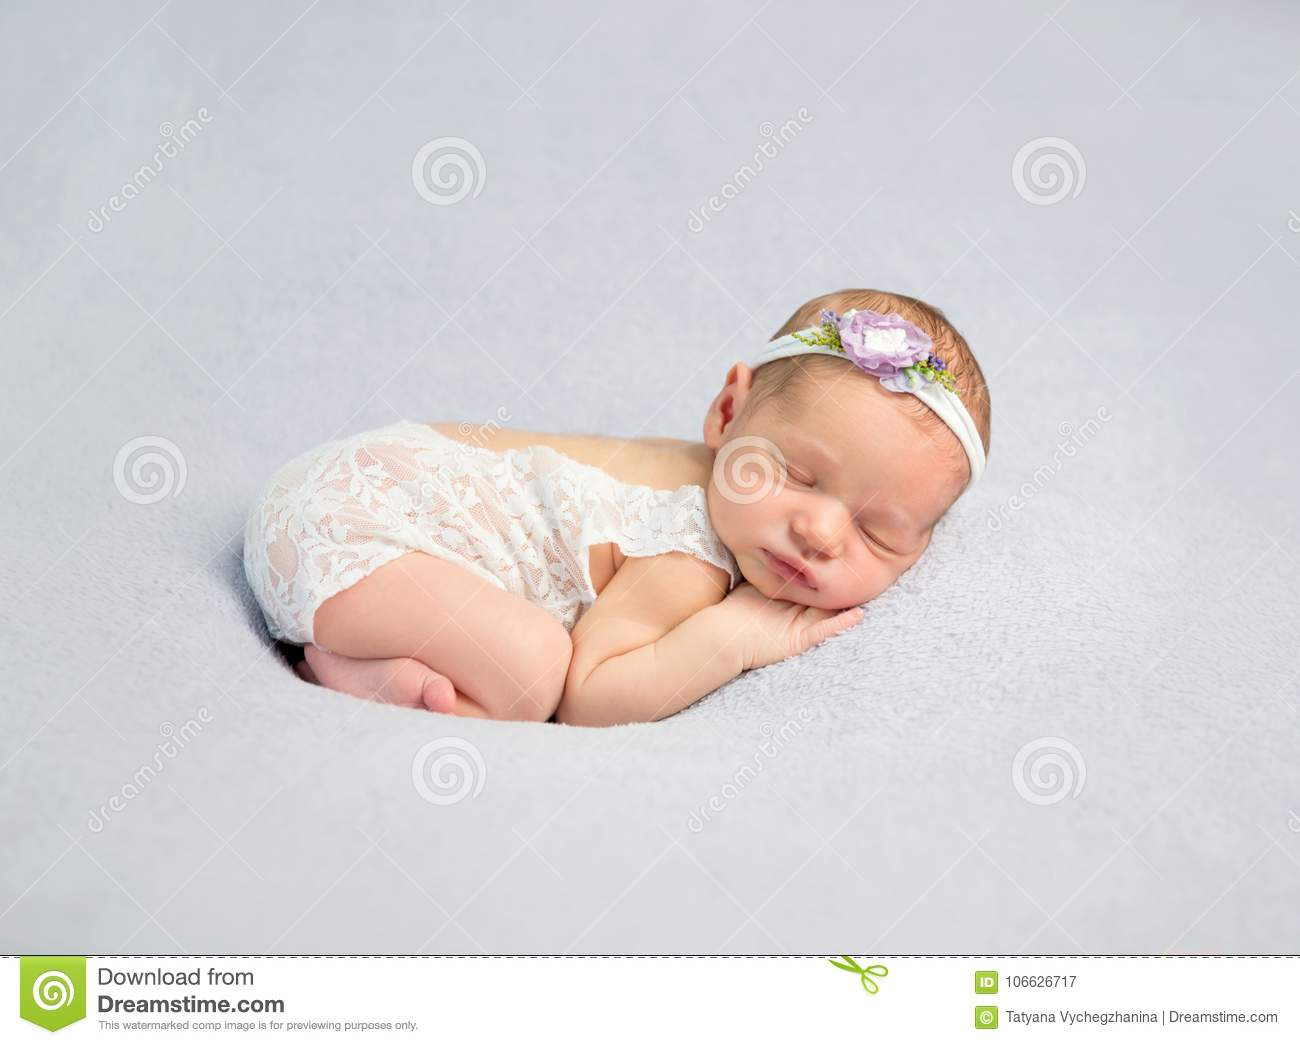 436aace32a74dc Adorable newborn baby girl in white lace bodysuit and headband sleeps on  her side.